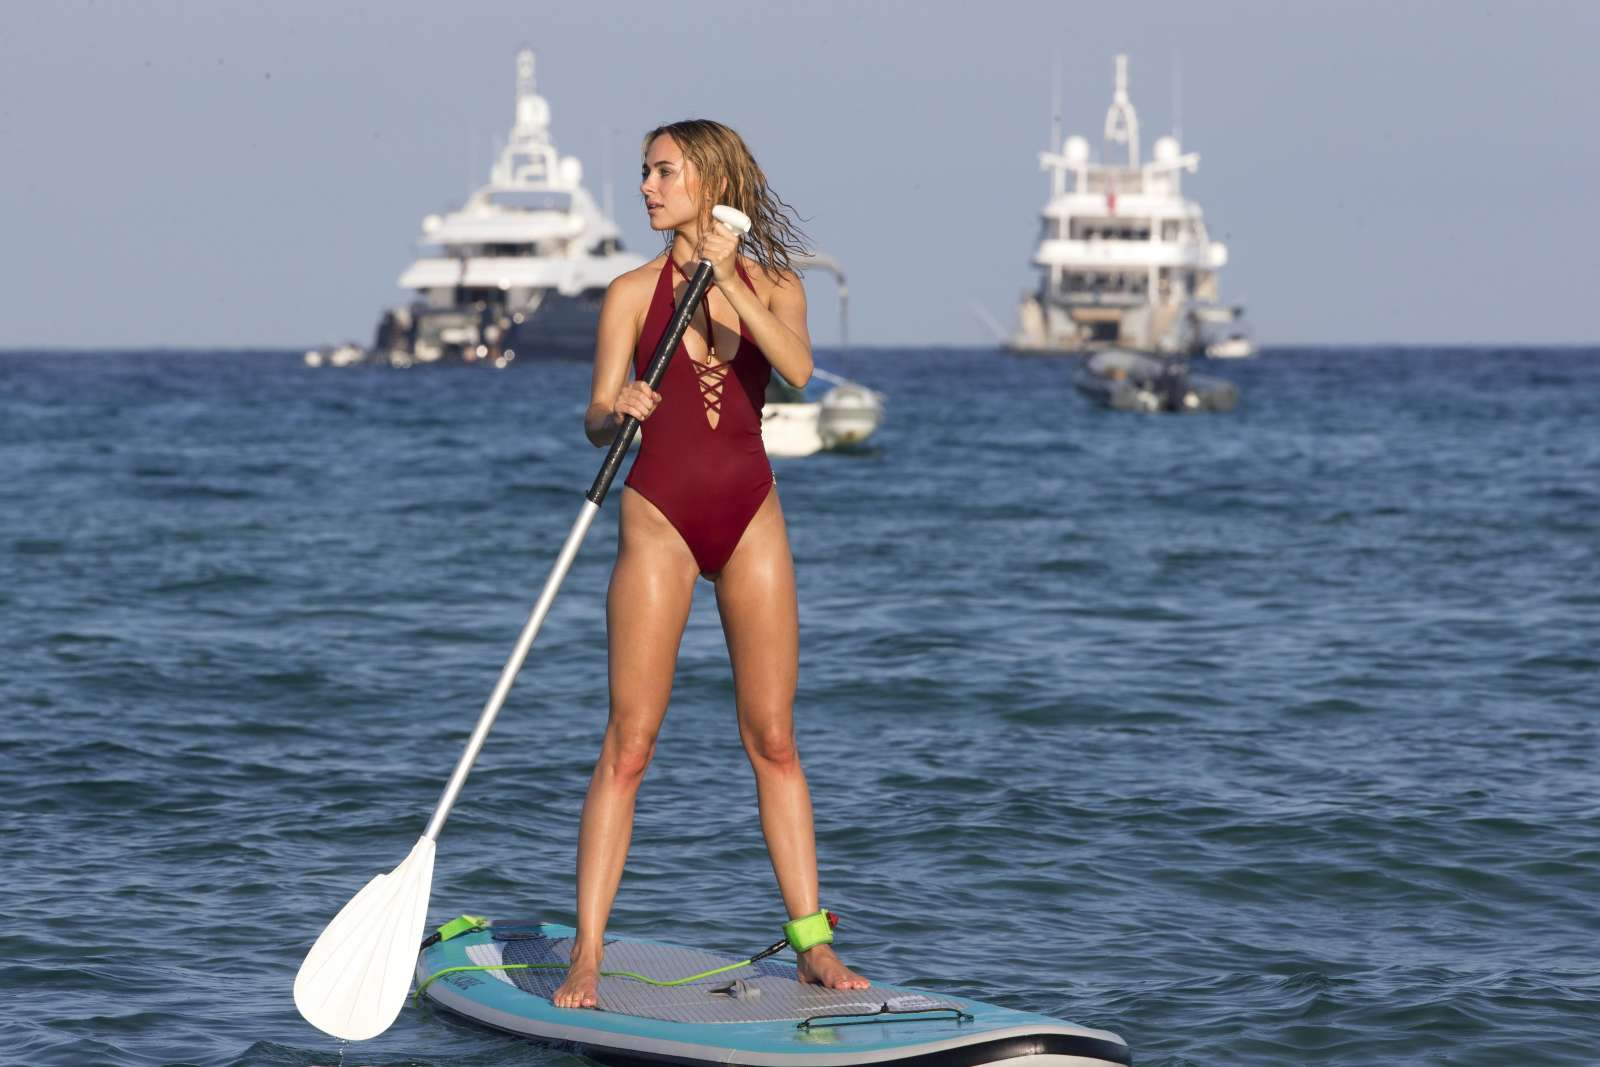 Kimberley Garner in Red Bikini Paddleboarding in Caribbean Pic 6 of 35